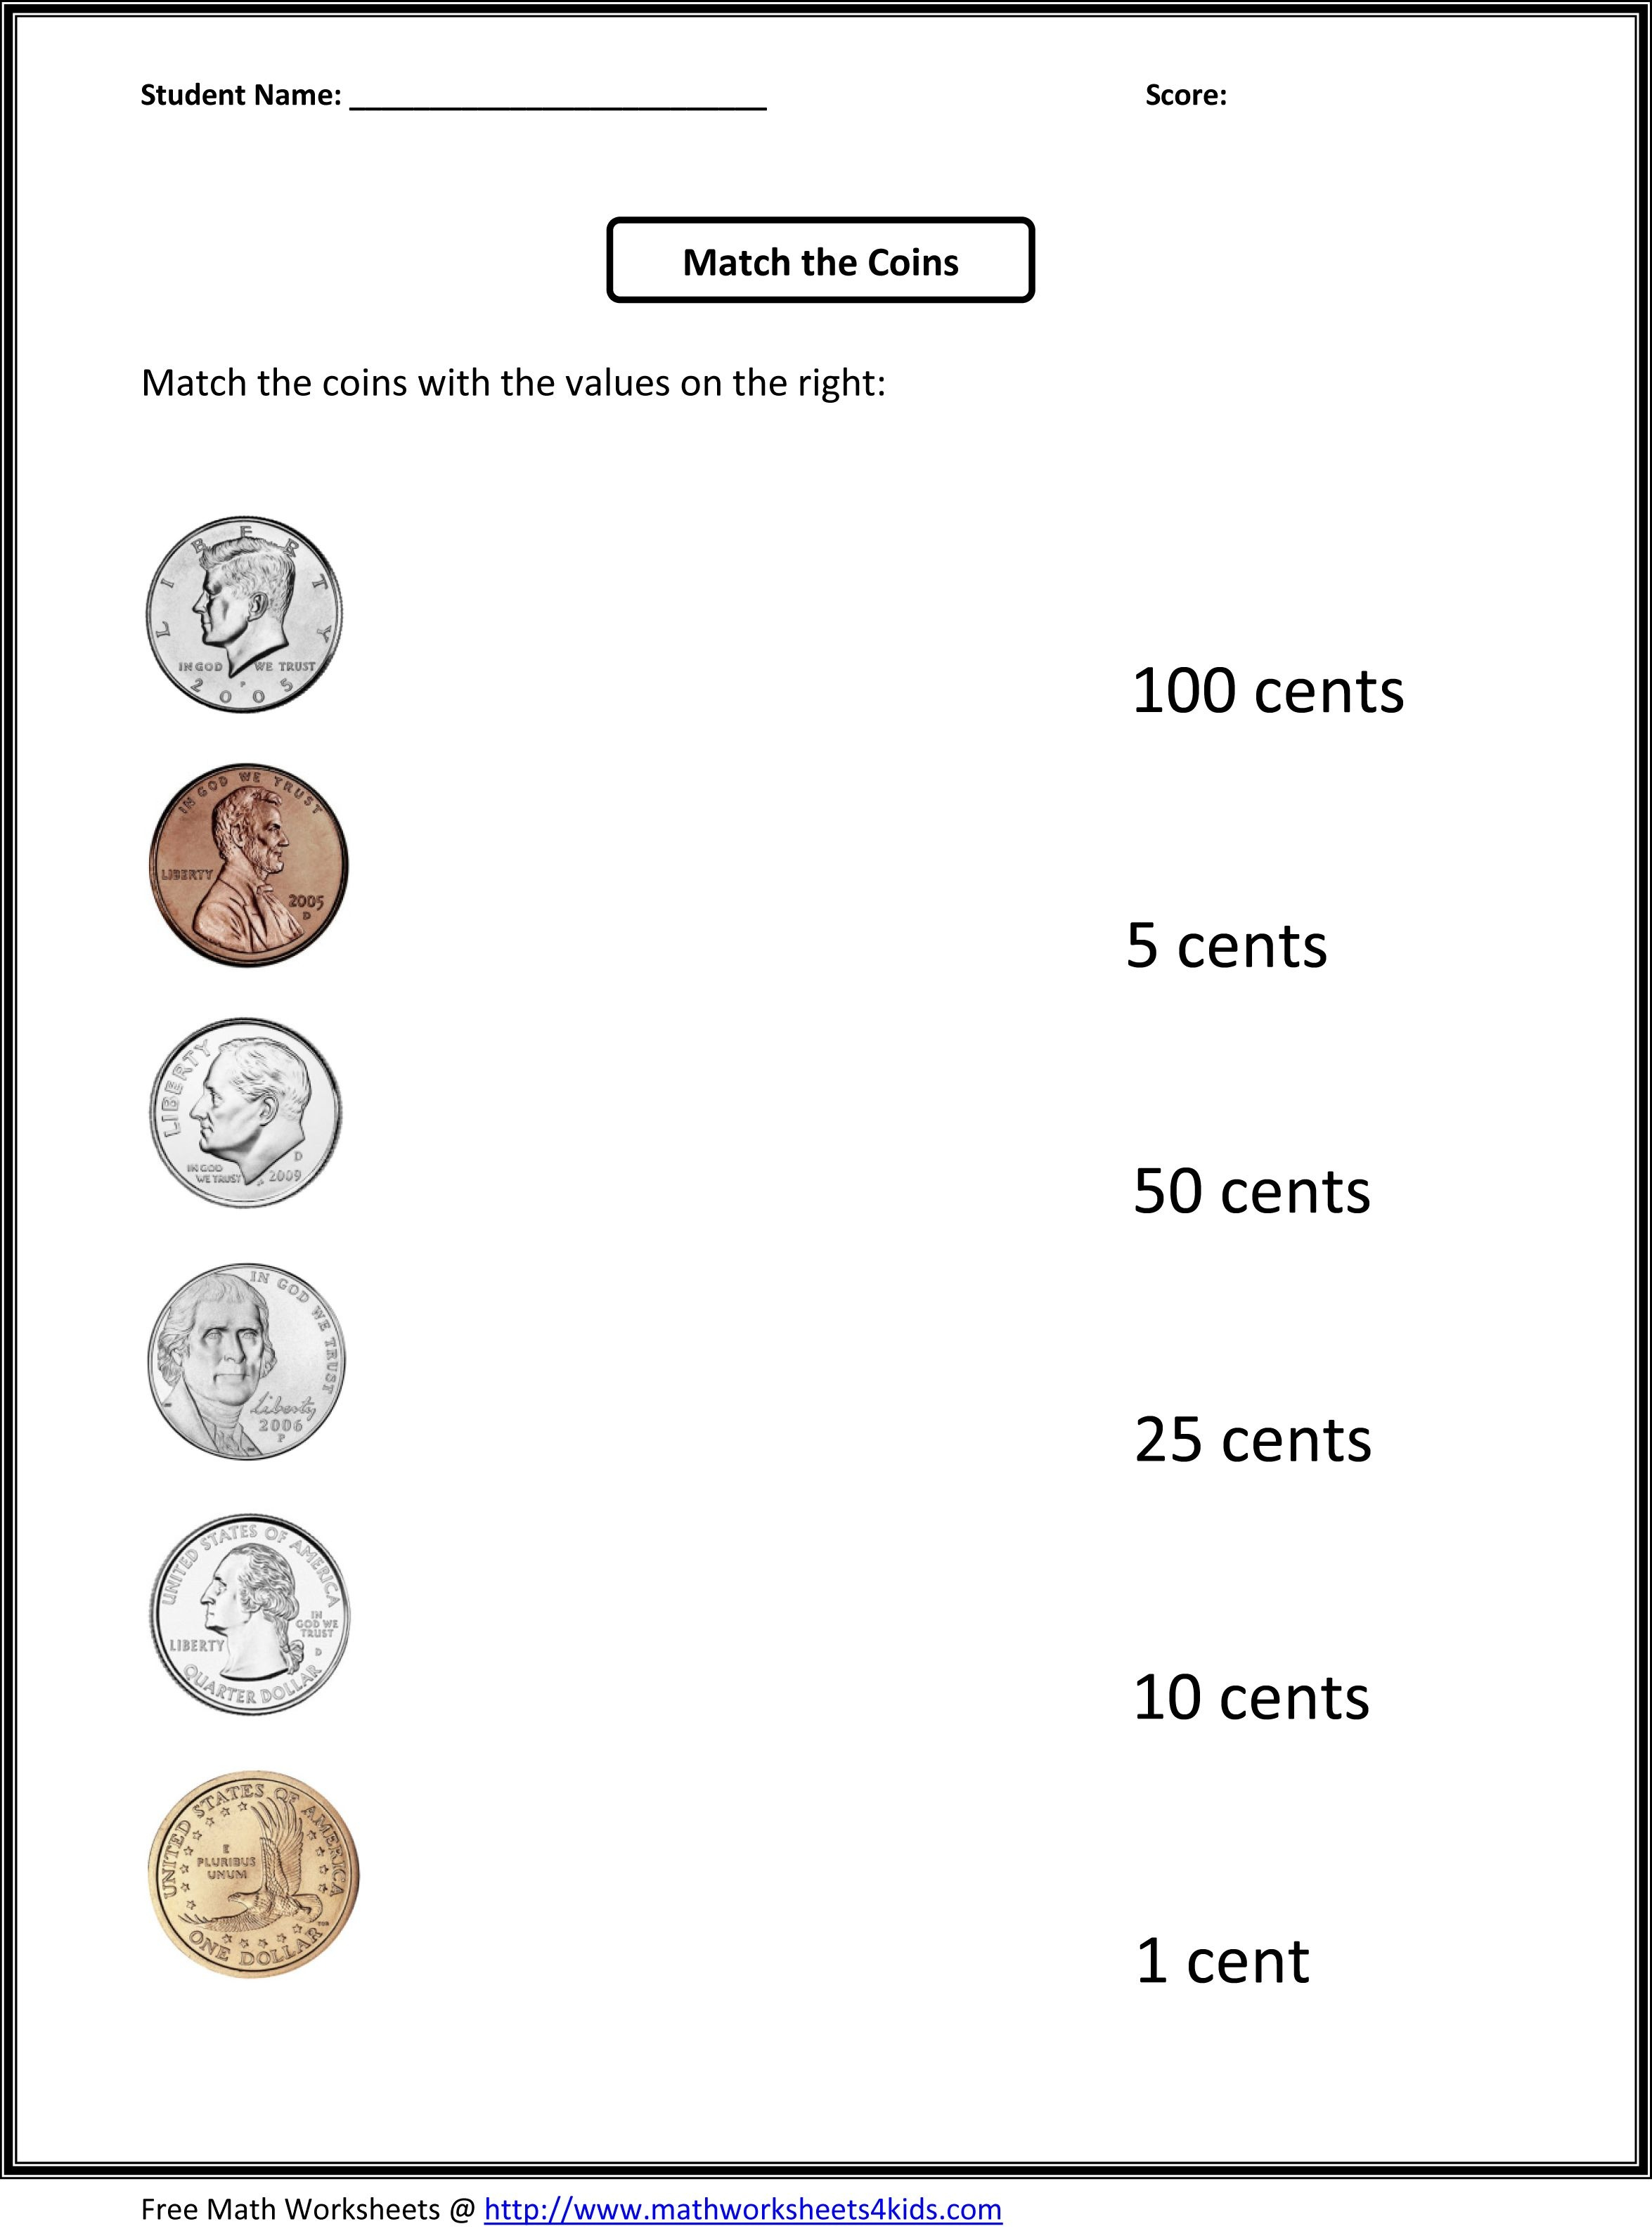 Free 1St Grade Worksheets | Match The Coins And Its Values - Free Printable Making Change Worksheets